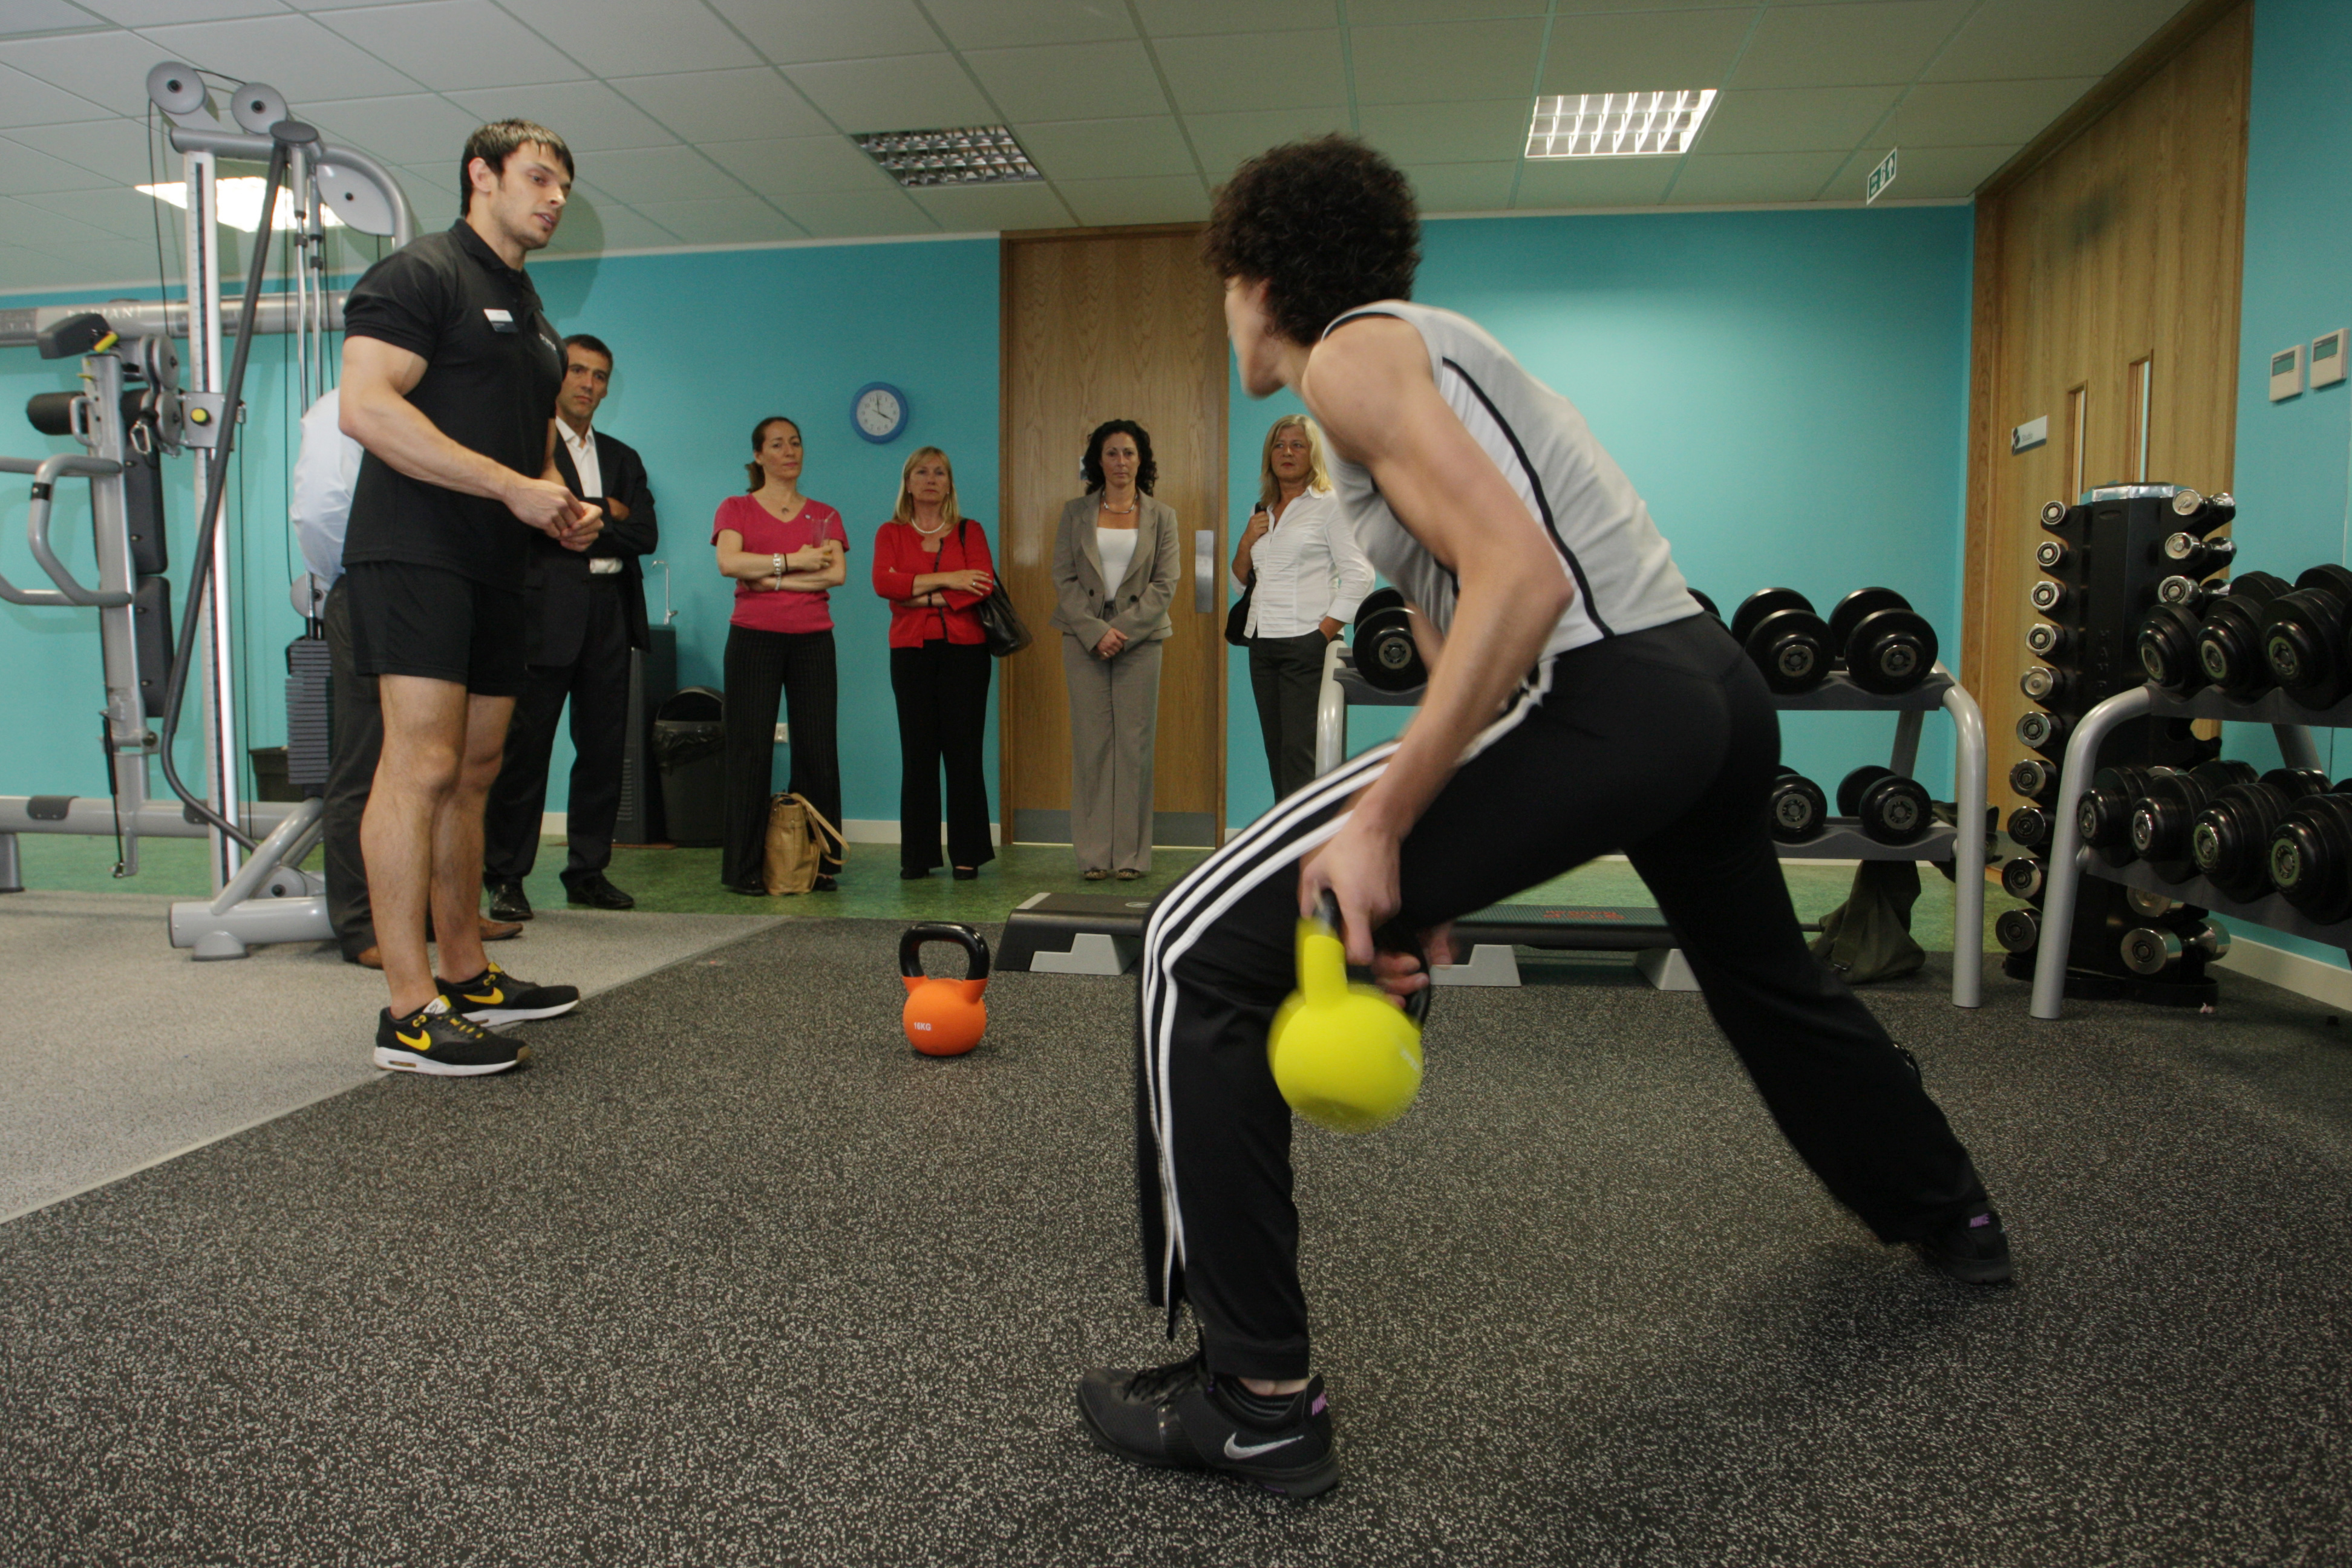 Personal trainers will be able to read about the latest fitness trends in the new magazine